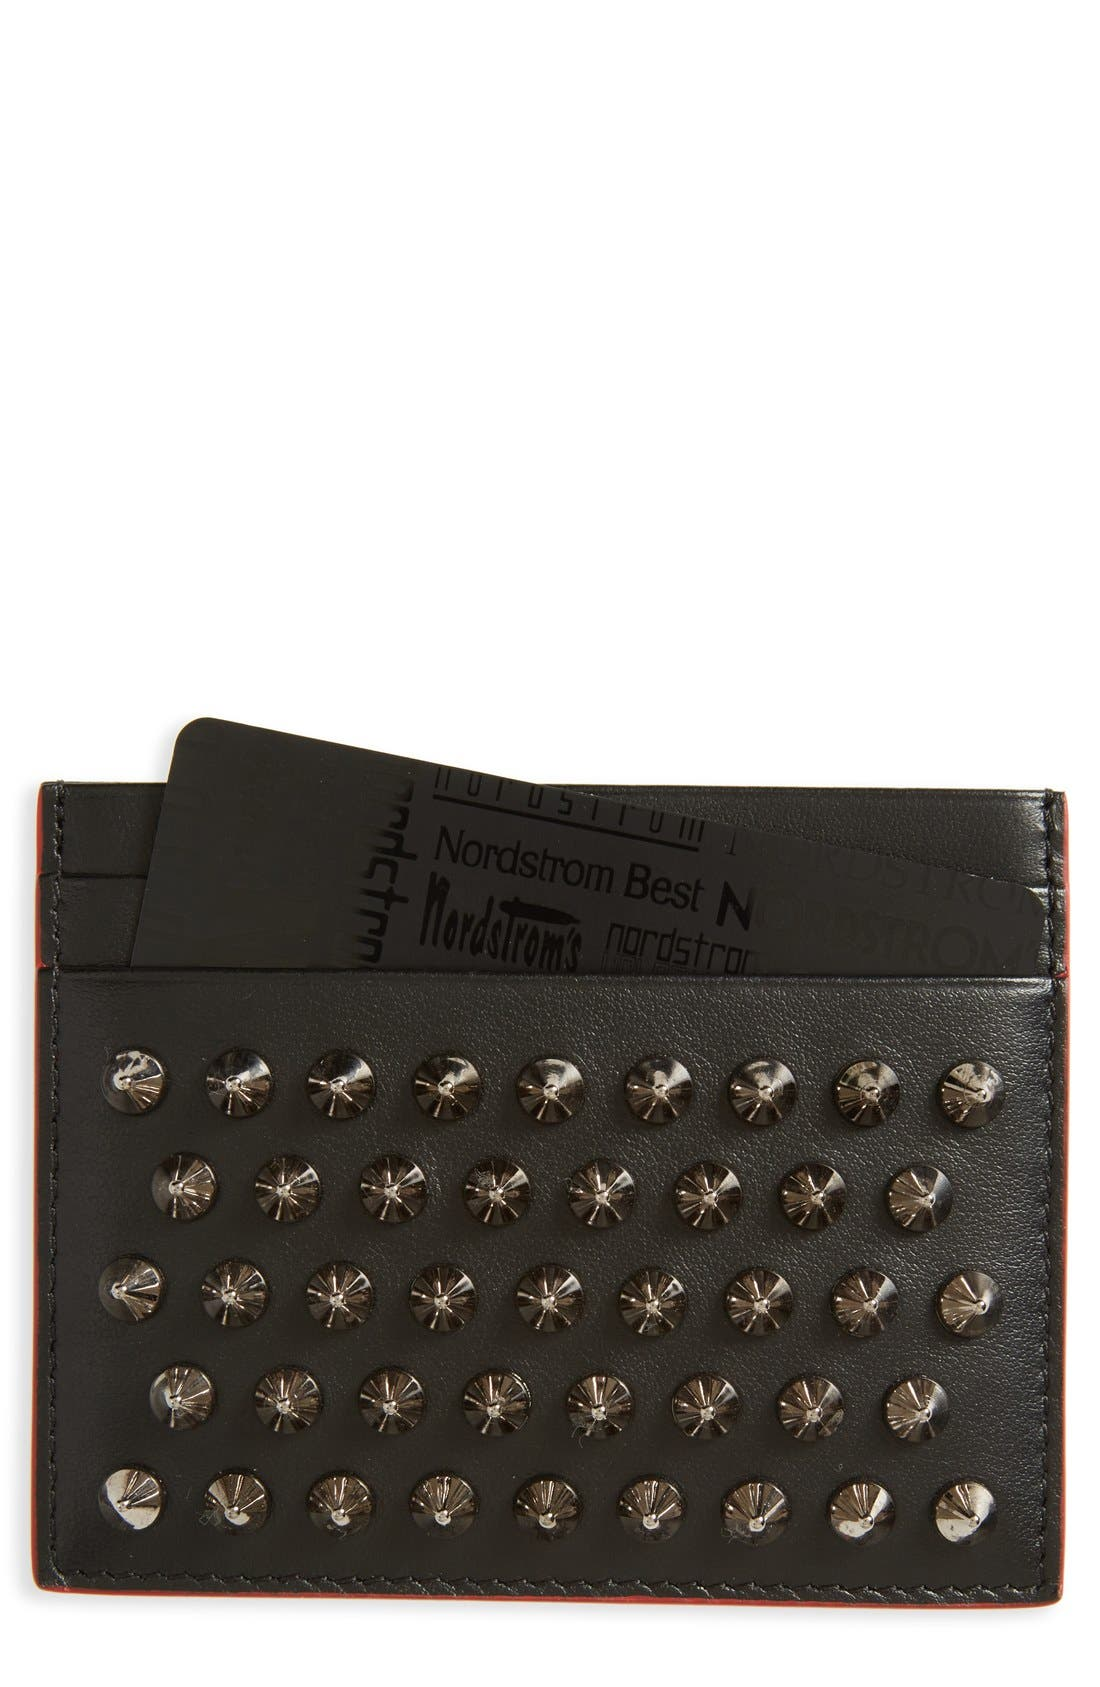 CHRISTIAN LOUBOUTIN Kios Spiked Calfskin Leather Card Case